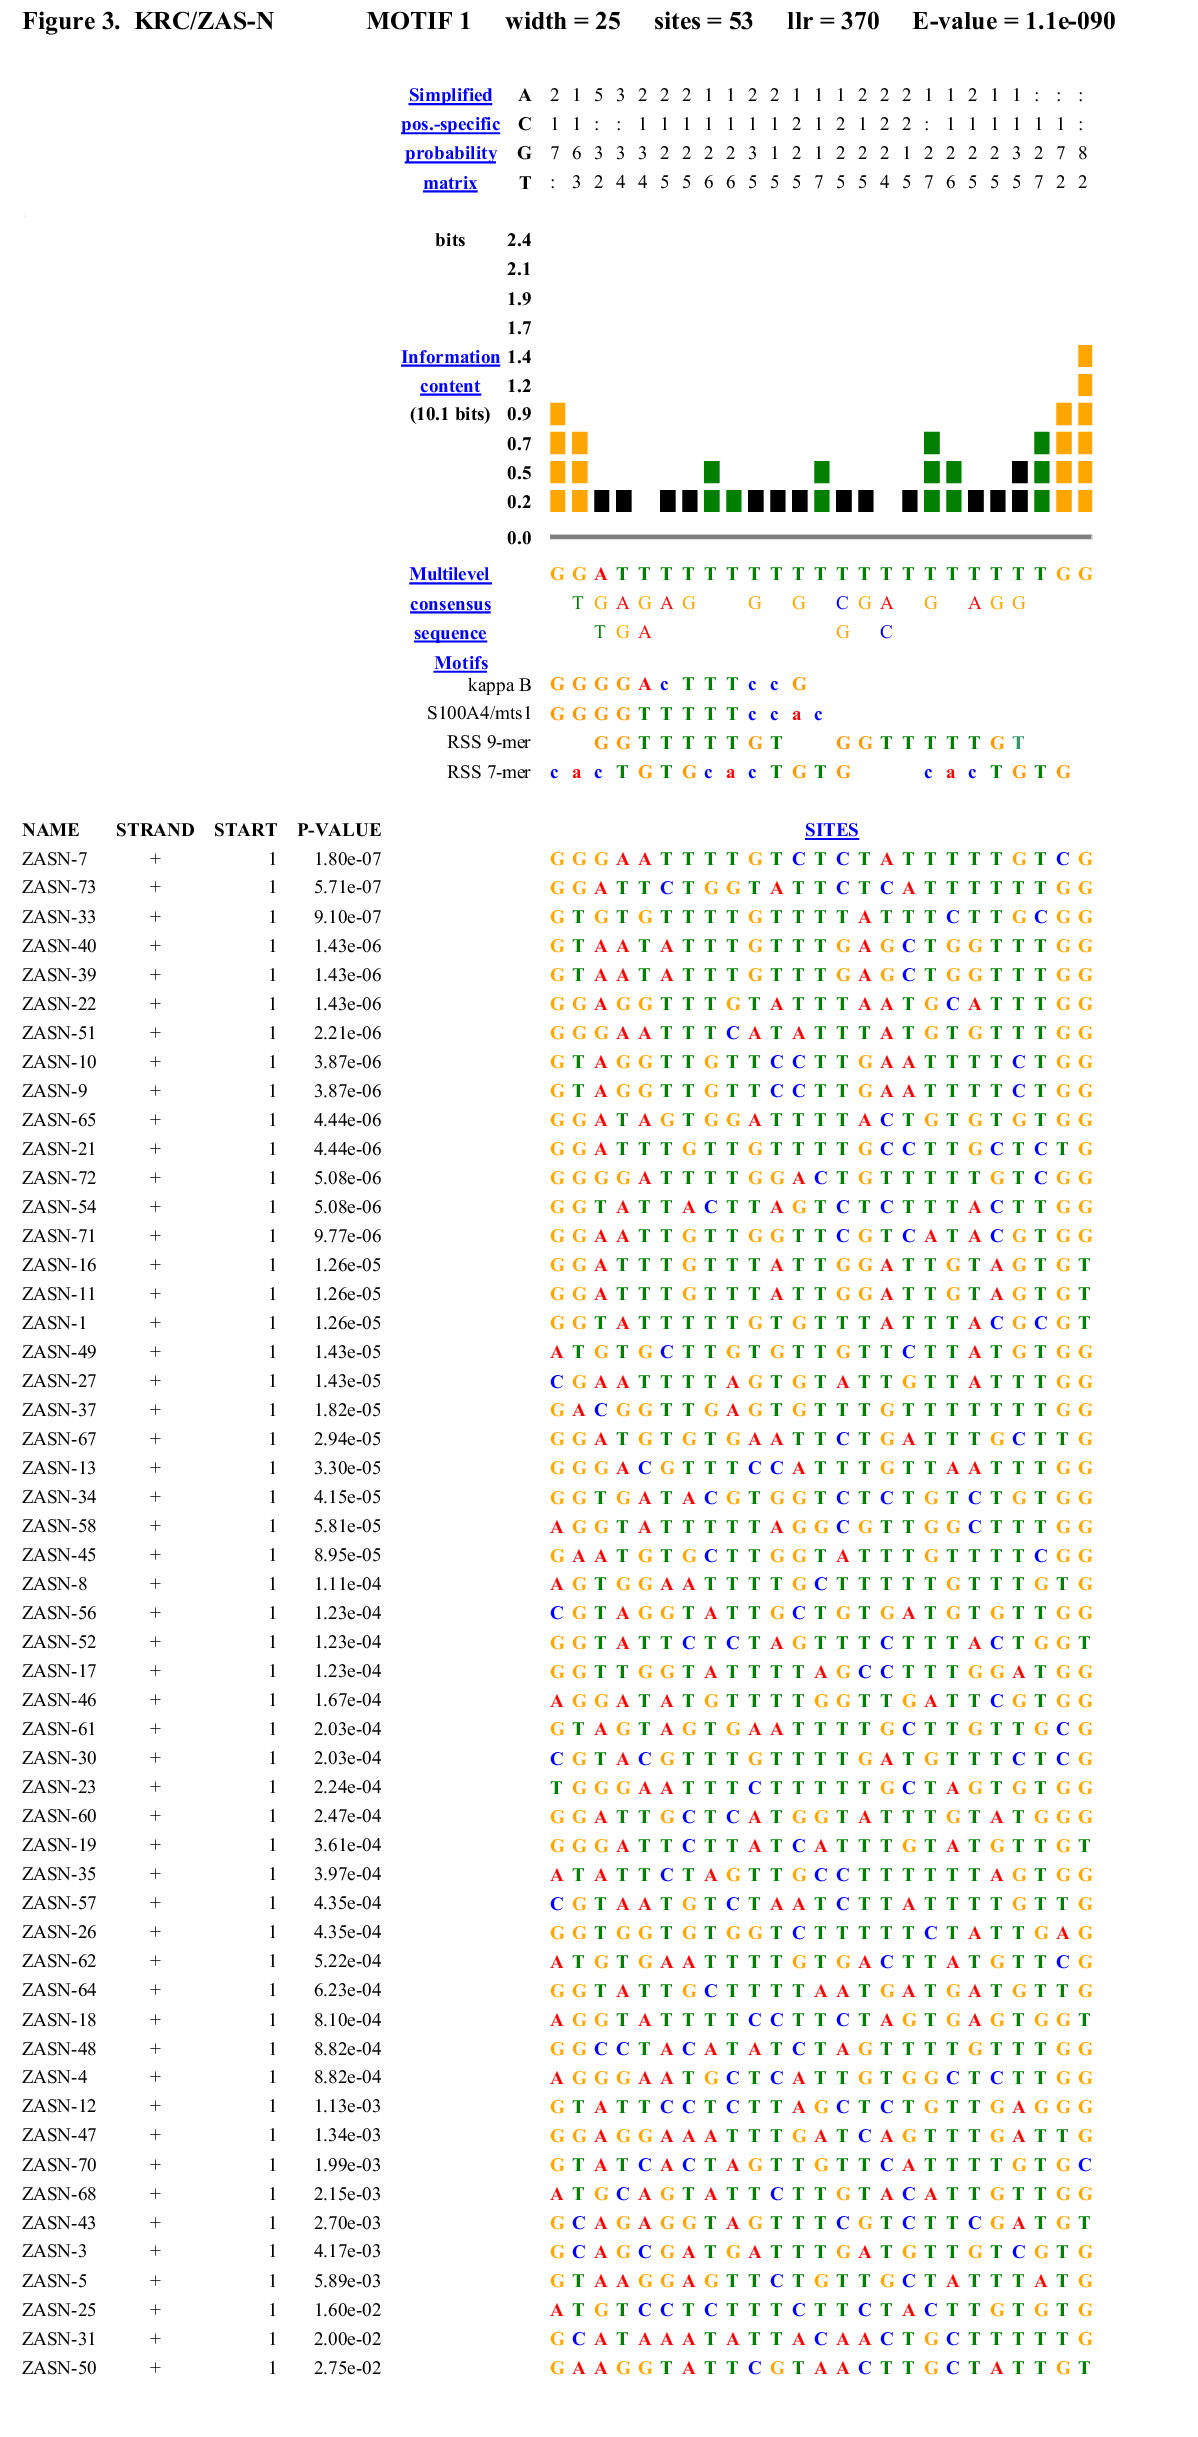 https://static-content.springer.com/image/art%3A10.1186%2F1471-2172-3-10/MediaObjects/12865_2002_Article_22_Fig3_HTML.jpg